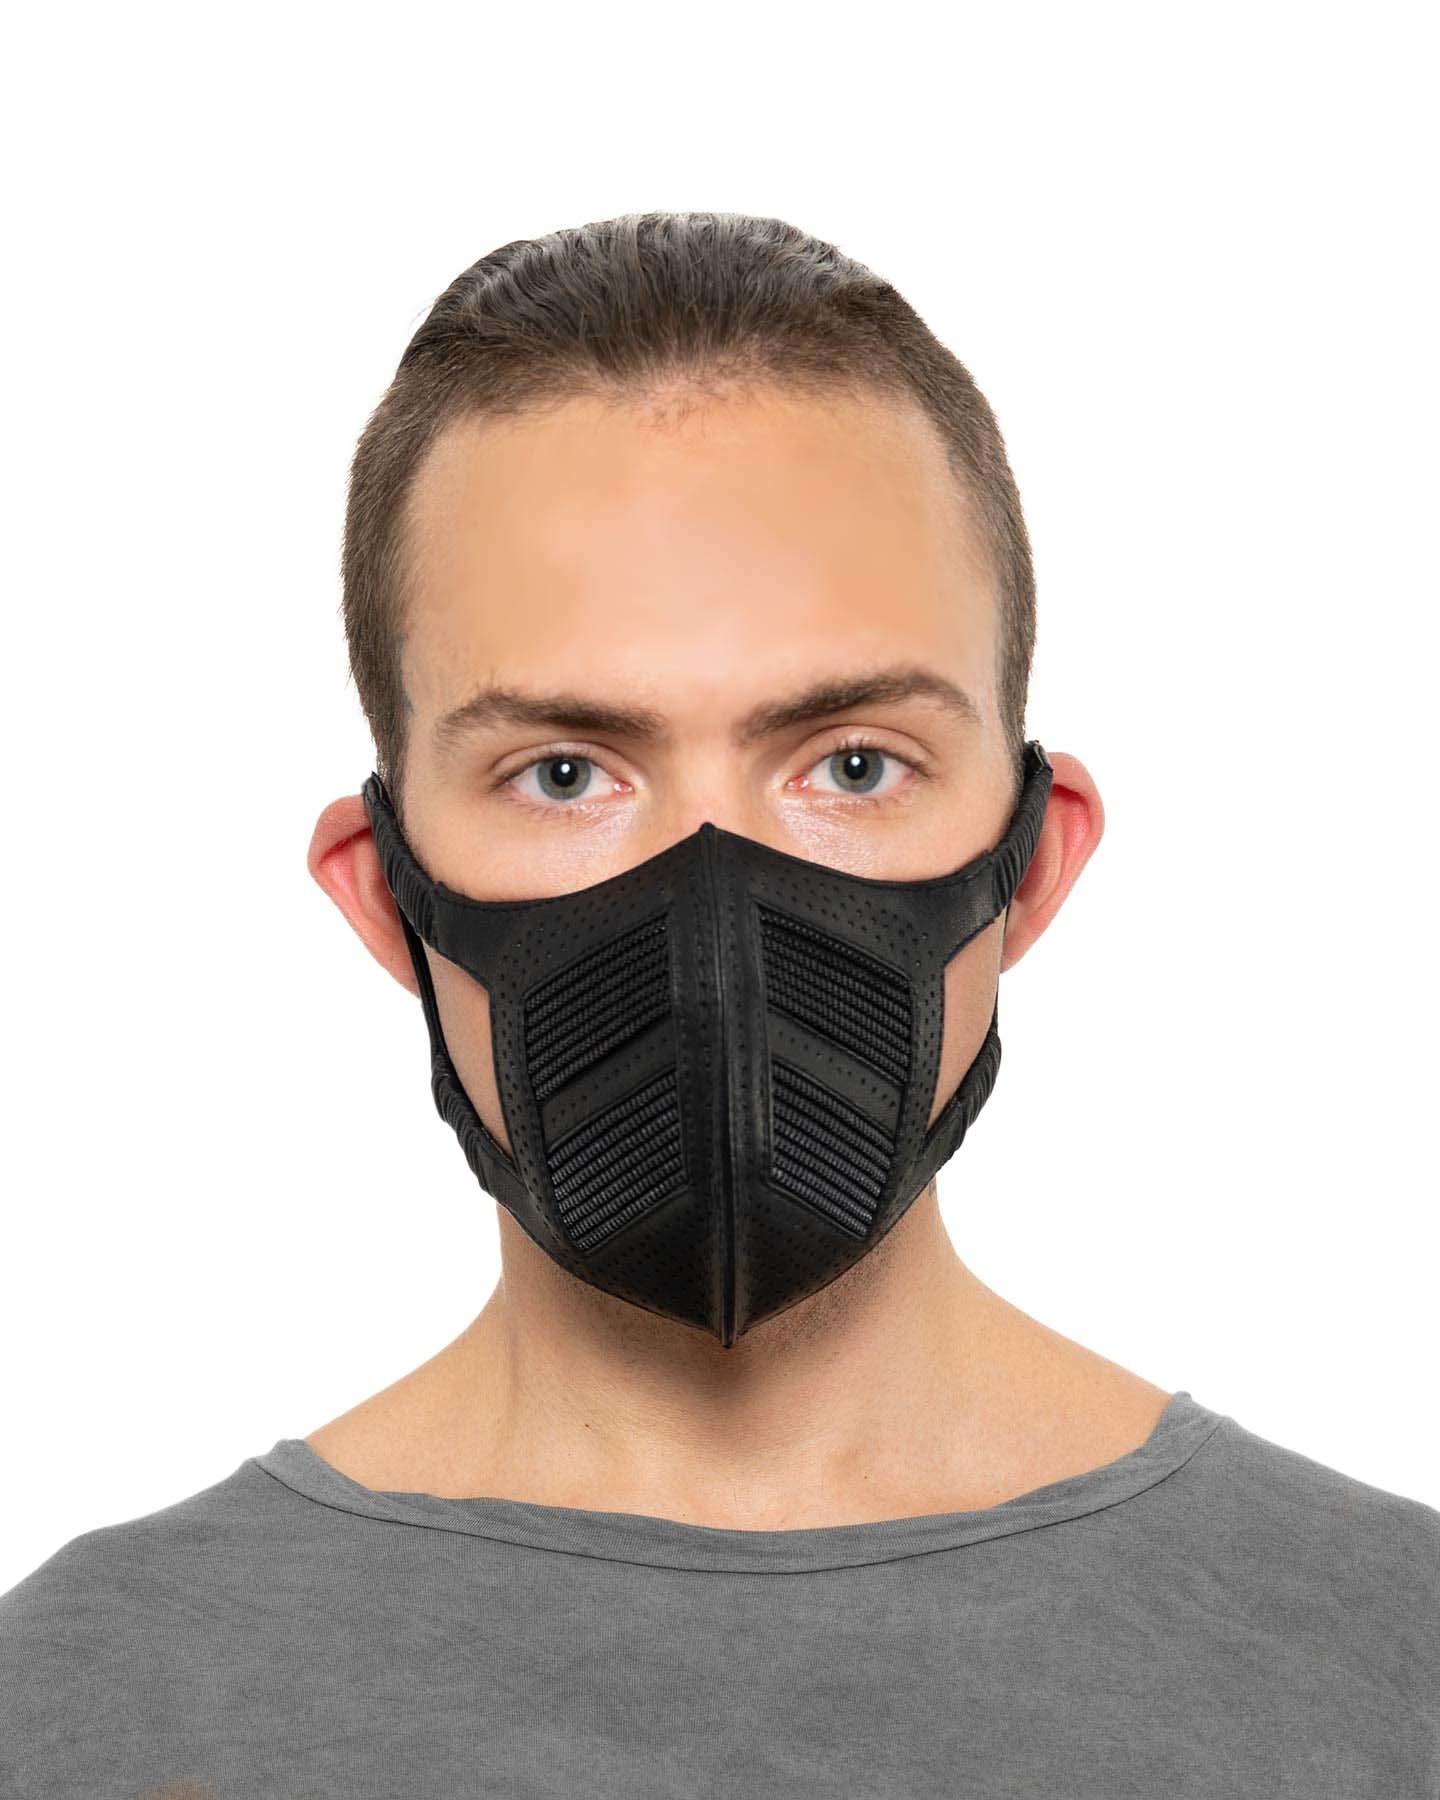 MOTO MASK WITH ZIPPERS